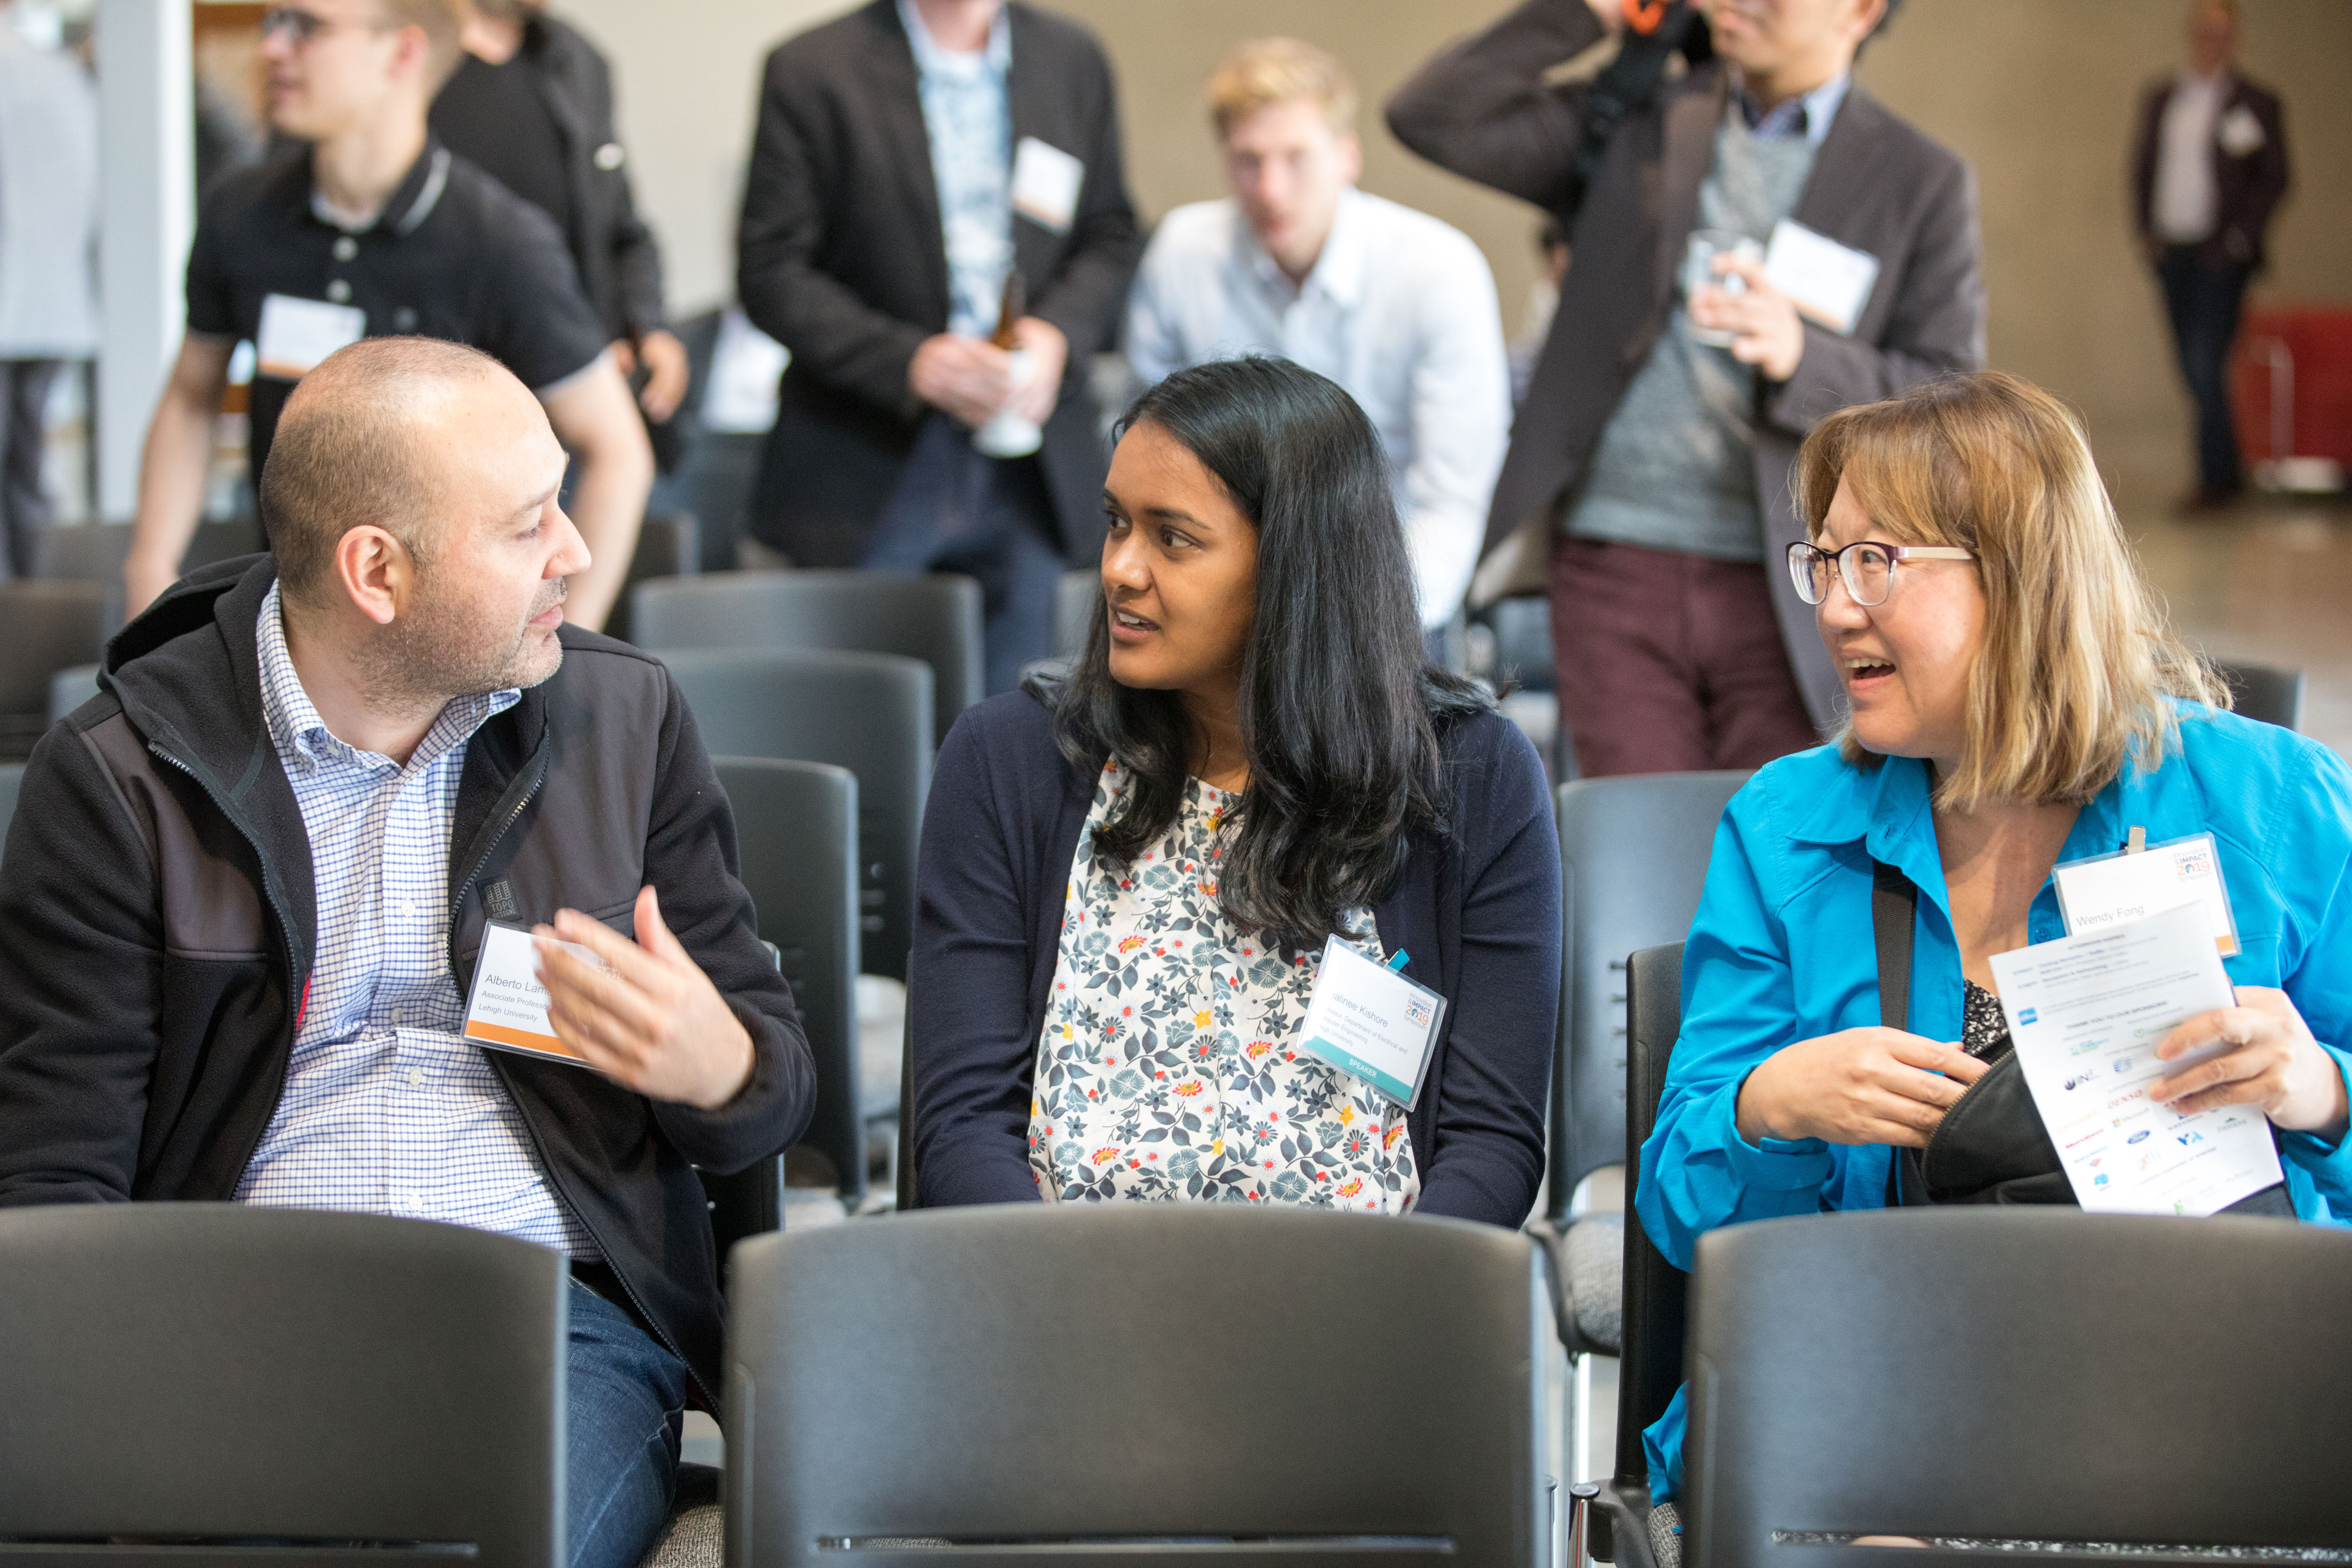 I-CPIE faculty Alberto Lamadrid (left), I-CPIE Associate Director Shalinee Kishore (center) and Wendy Fong, Director of Industry Engagement for Lehigh's Western Regional Office (right) at the 2019 Innovation and Impact Symposium in San Leandro, CA. (Prospect Silicon Valley photo by Ross Marlowe from Eversnap).